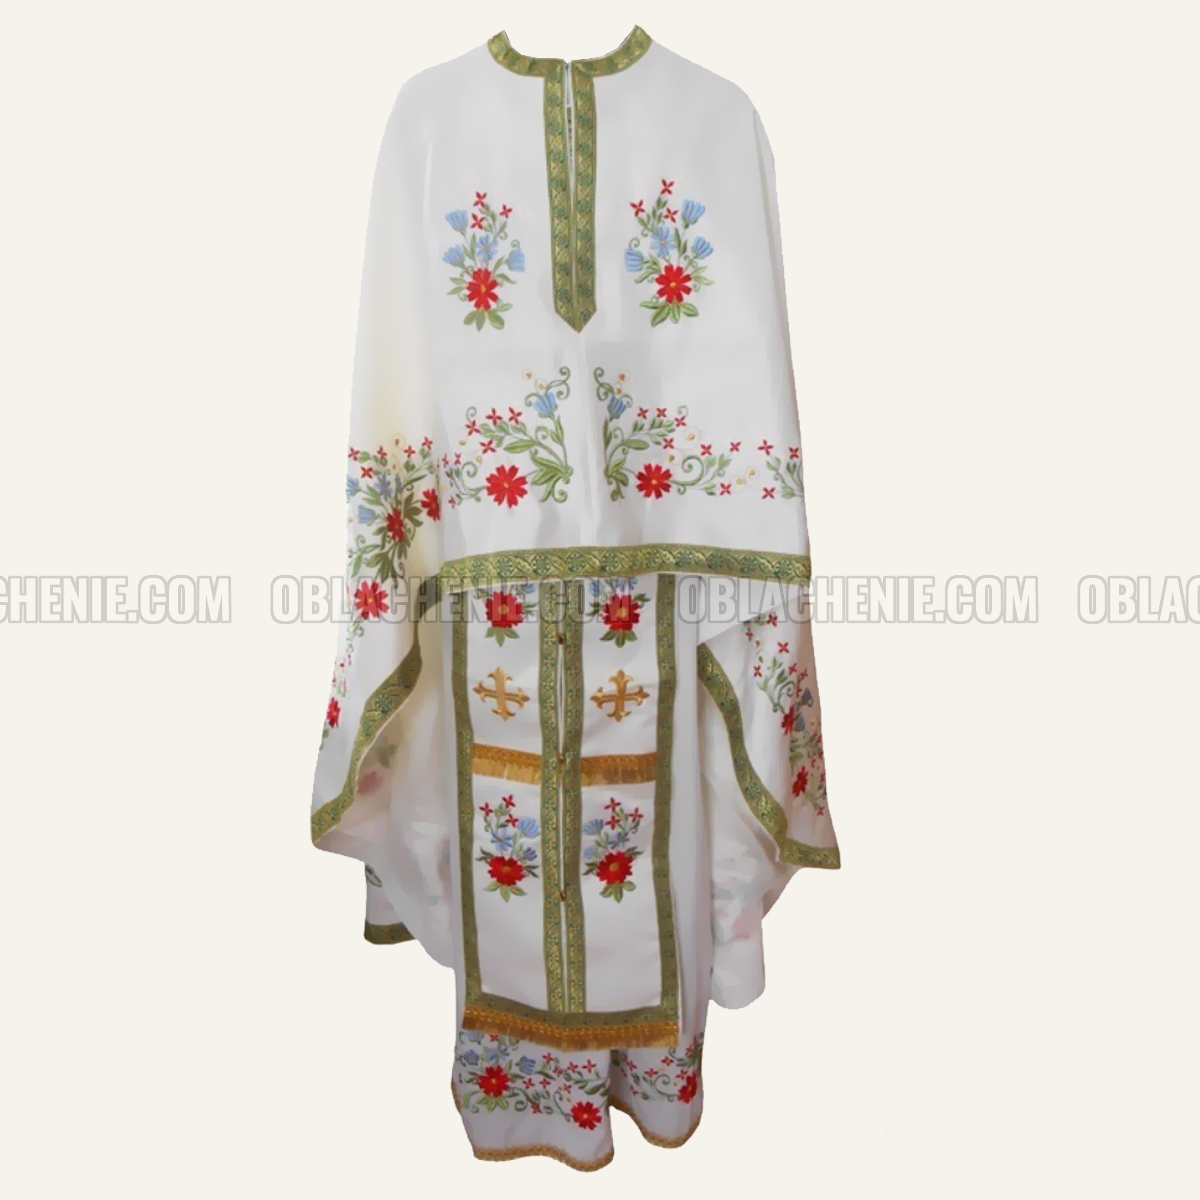 Embroidered priest's vestments 10231